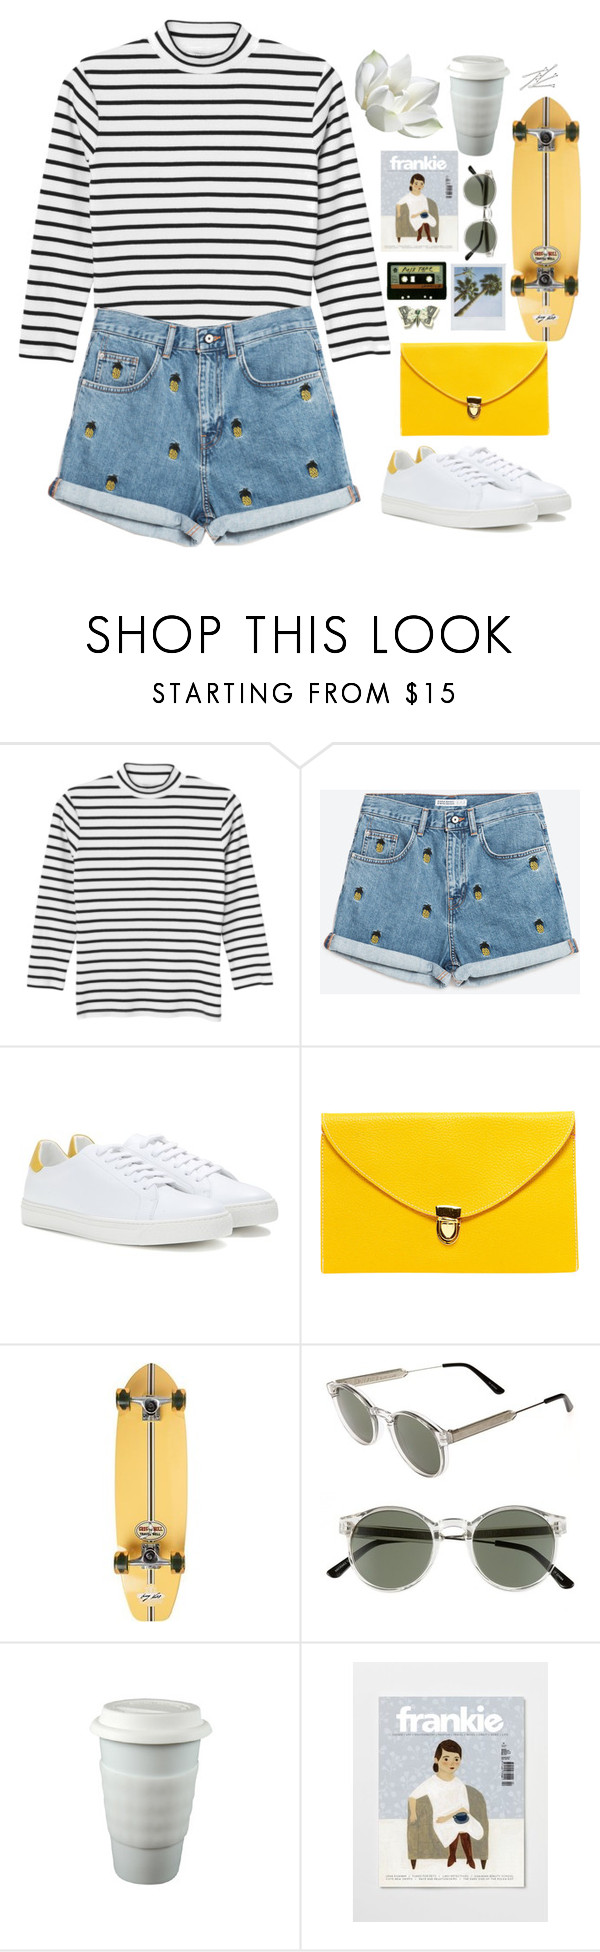 """Untitled #2758"" by wtf-towear ❤ liked on Polyvore featuring Monki, Anya Hindmarch, Boohoo, Element, Spitfire, Michele and BOBBY"